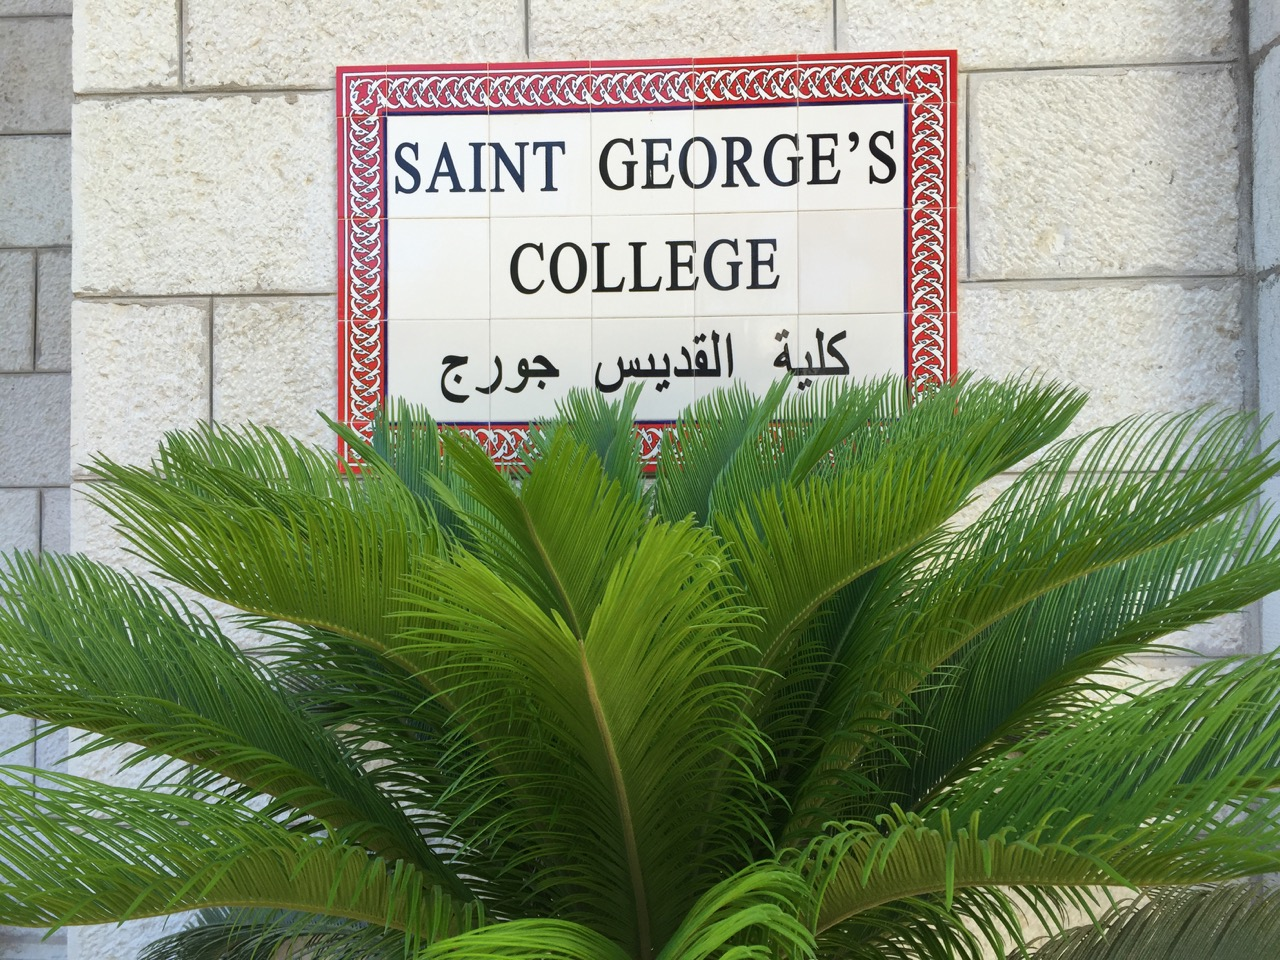 About St George's College